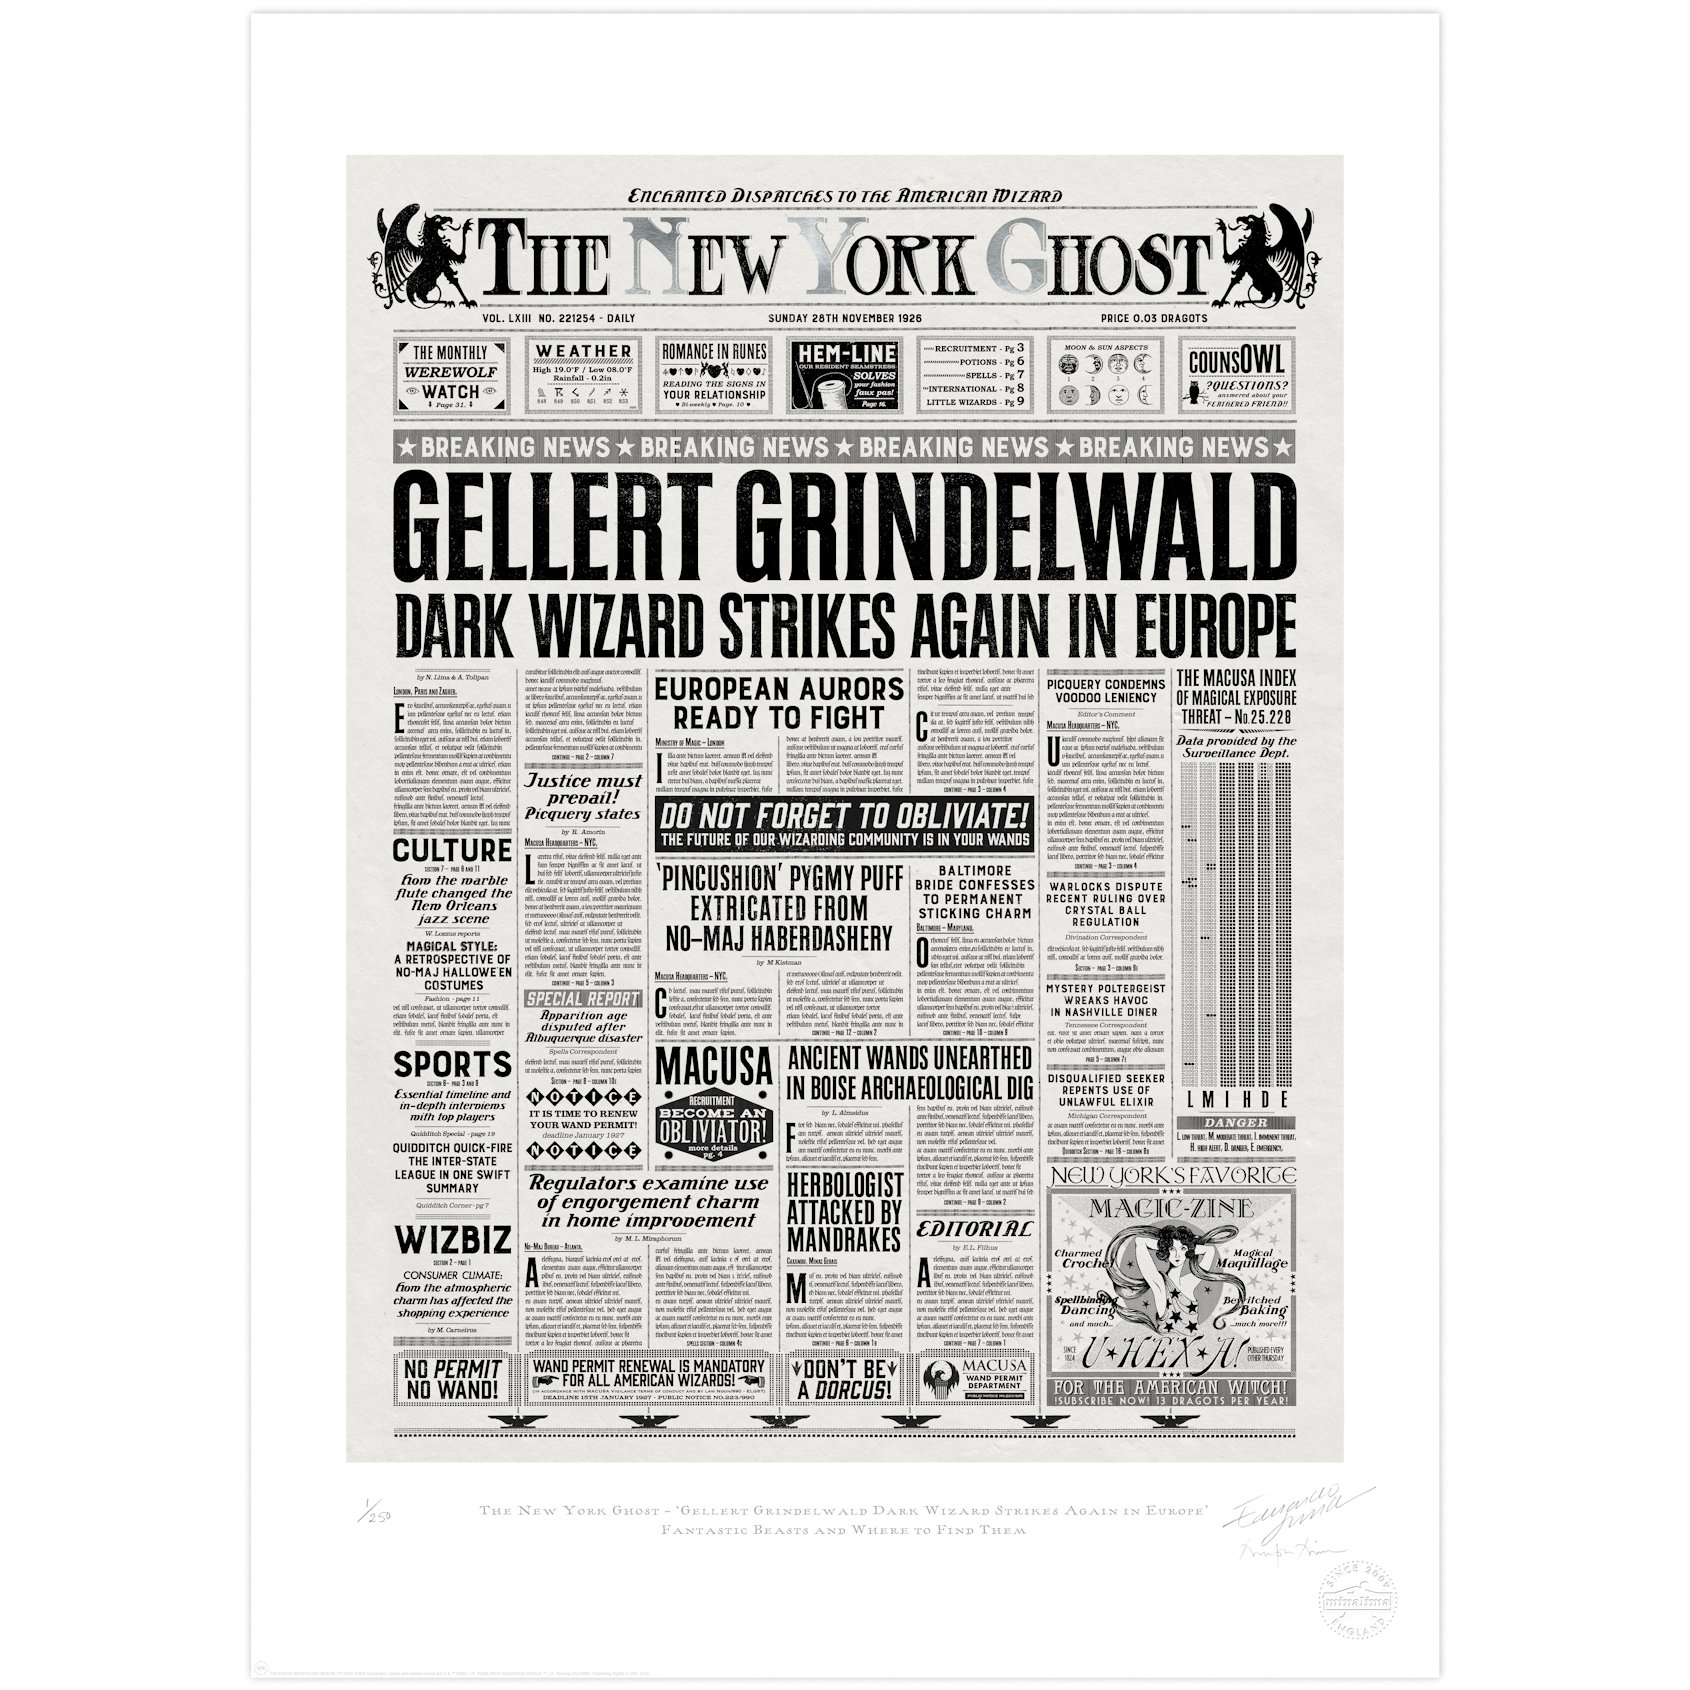 the_new_york_ghost_-_gellert_grindelwald_strikes_again_in_europe__minalima_-_copie.jpg